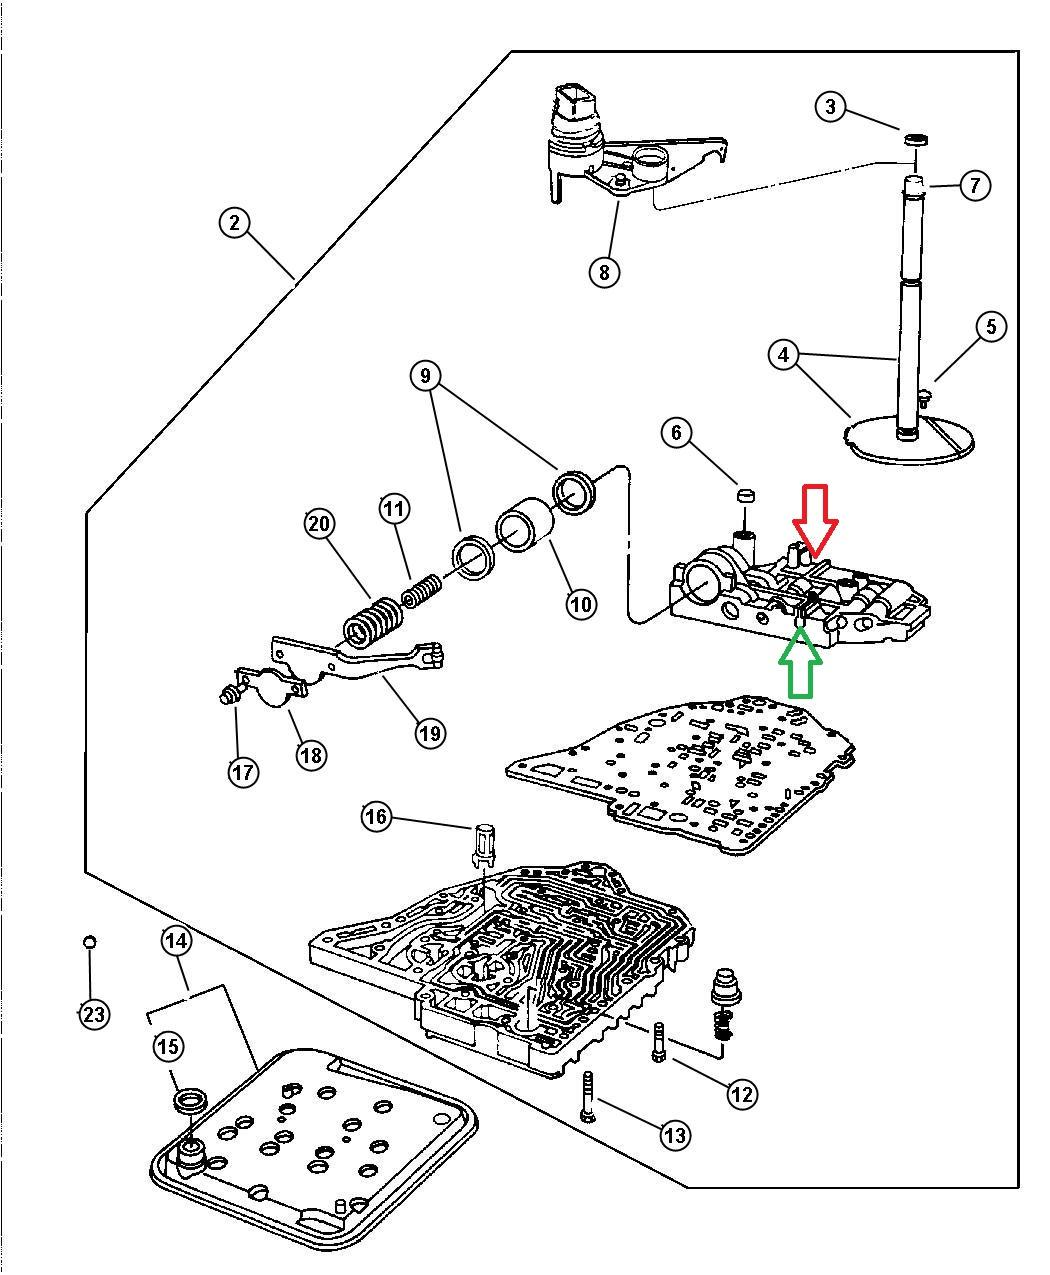 1998 Honda Civic Transmission Range Sensor Location